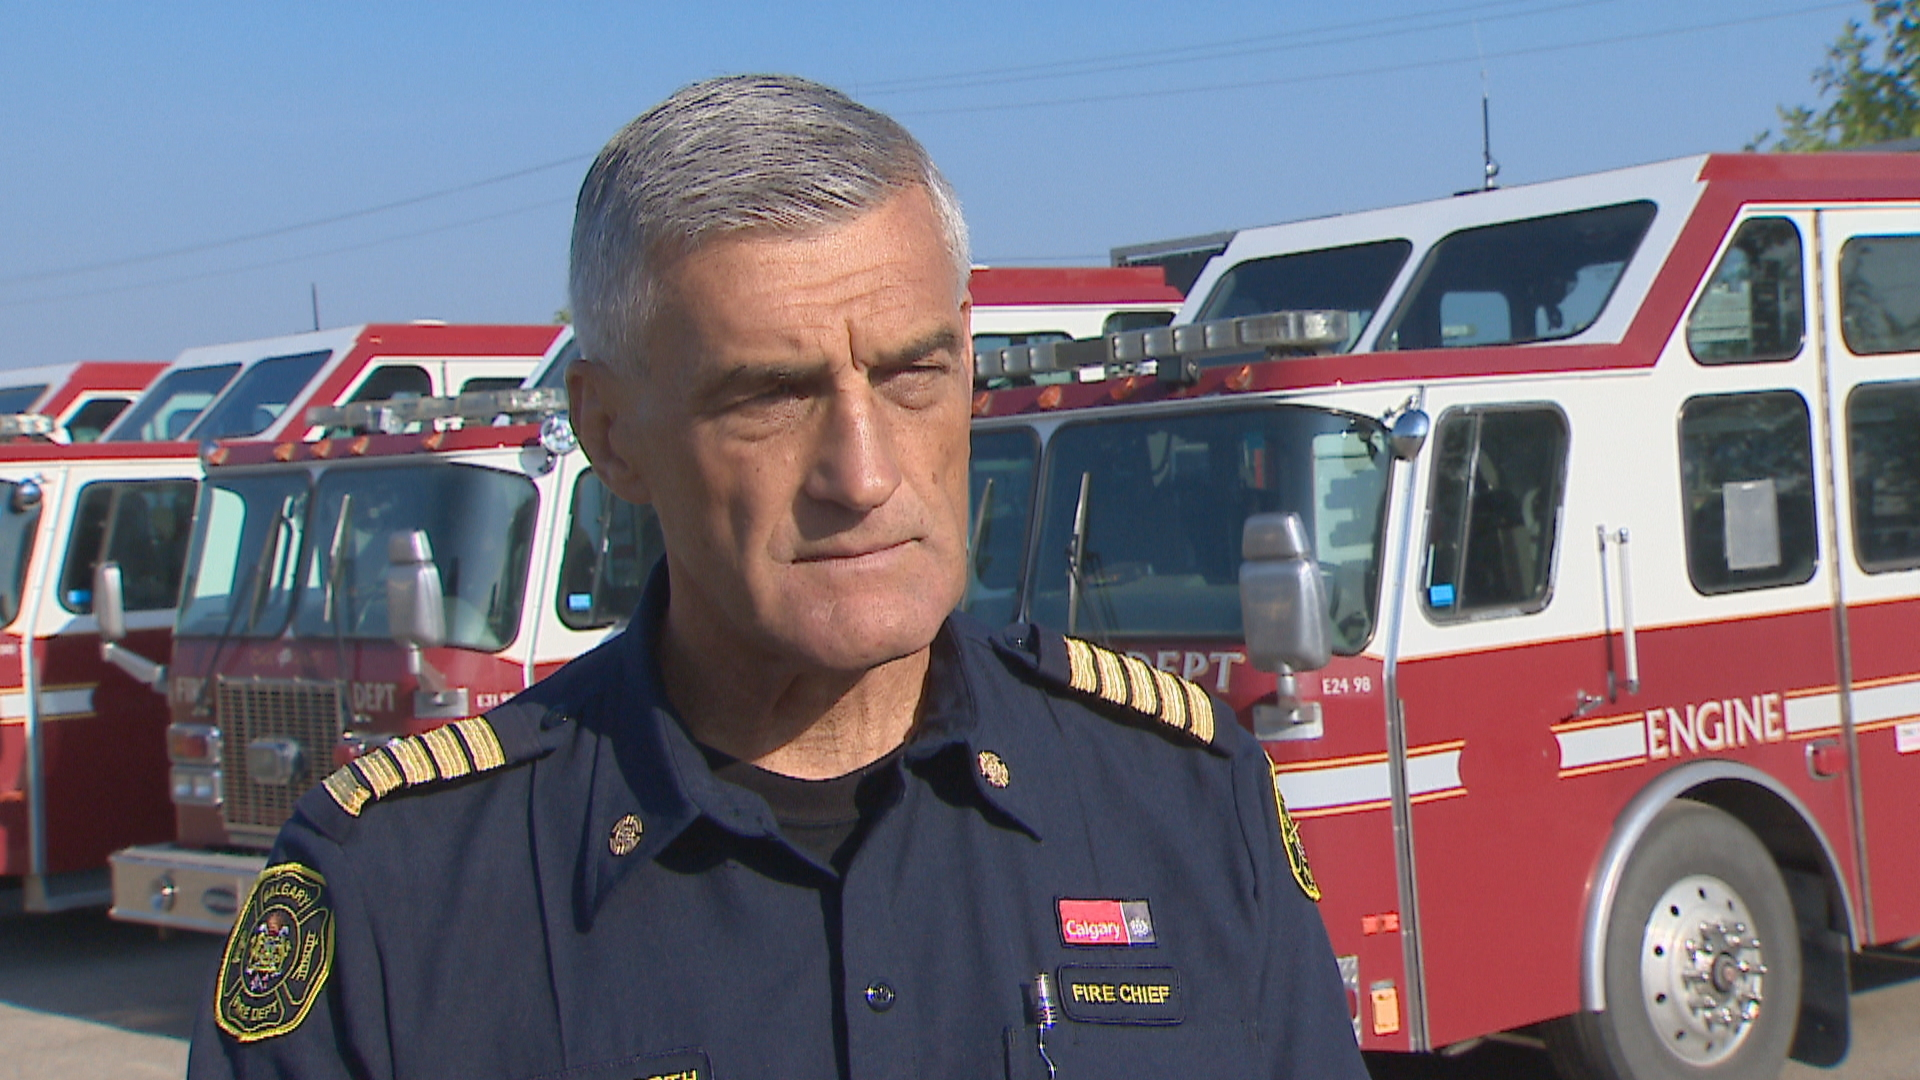 Calgary Fire Department Chief Steve Dongworth, seen in a file photo, says the department is committed to the process of building a more respectful workplace. (CBC)